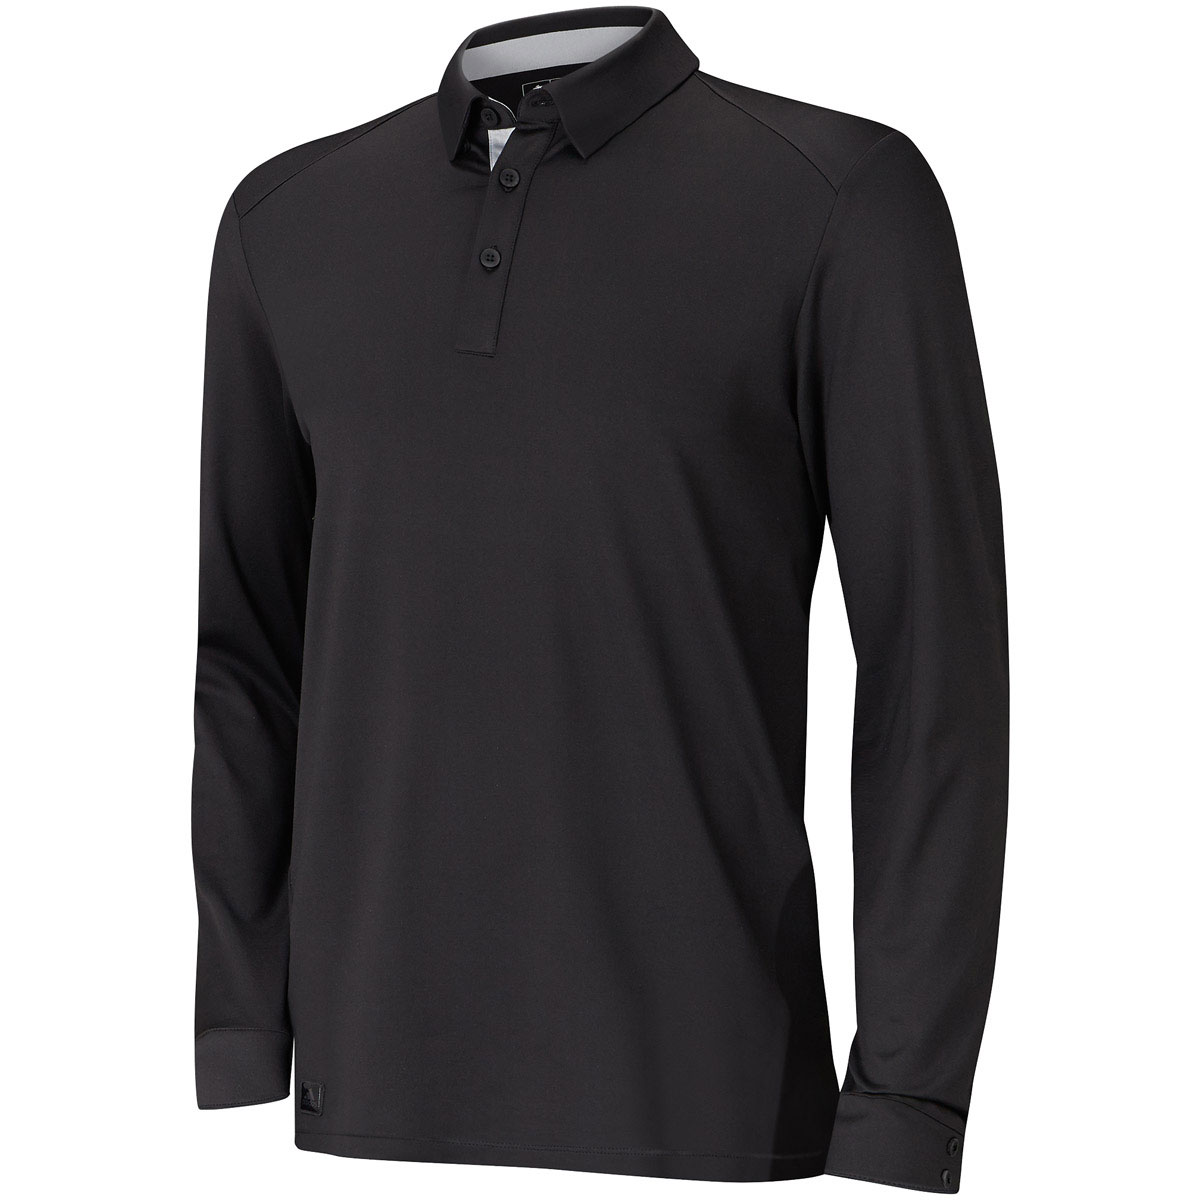 Adidas golf 2015 mens fall weight heather long sleeve polo for Mens long sleeve collared polo shirts